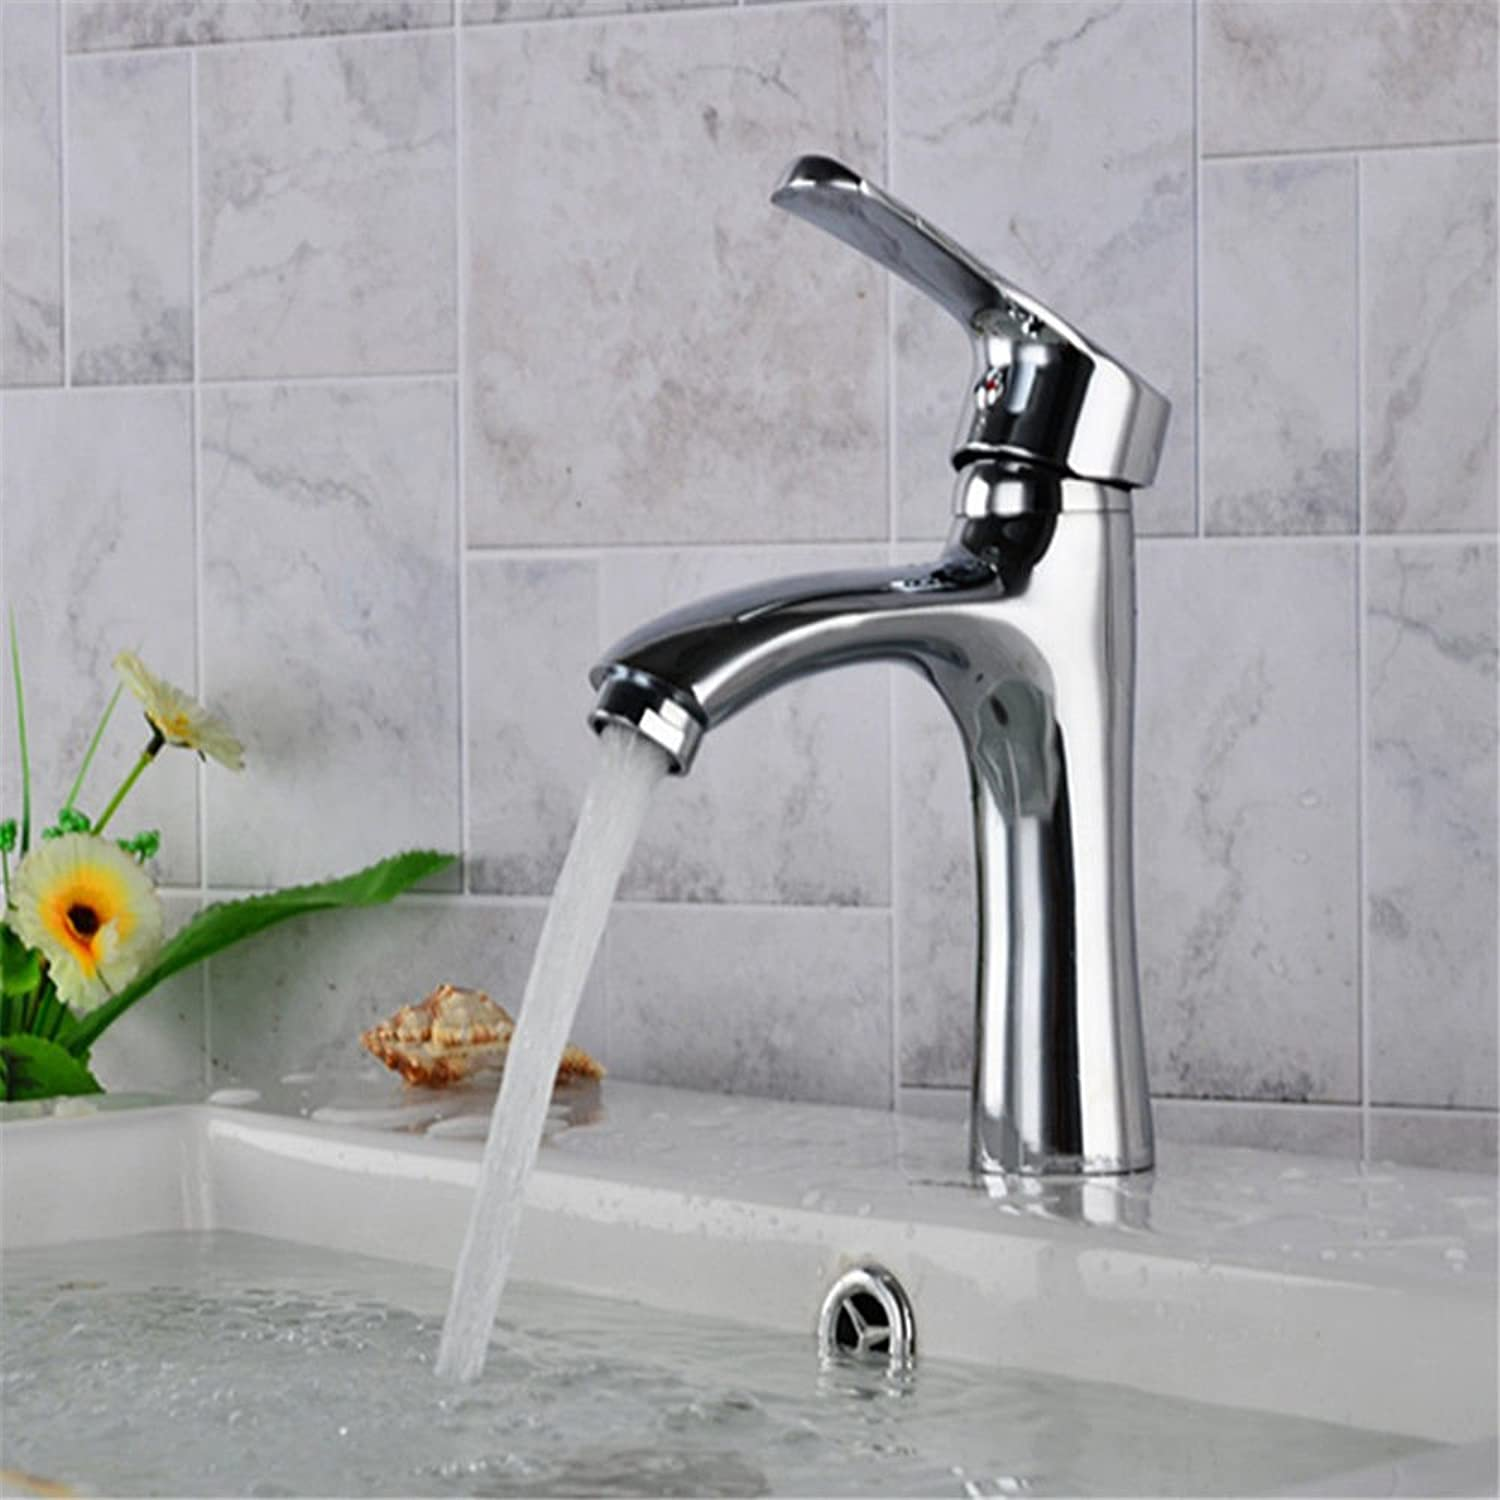 Lalaky Taps Faucet Kitchen Mixer Sink Waterfall Bathroom Mixer Basin Mixer Tap for Kitchen Bathroom and Washroom Copper Single Hole Hot and Cold Ceramic Valve Core